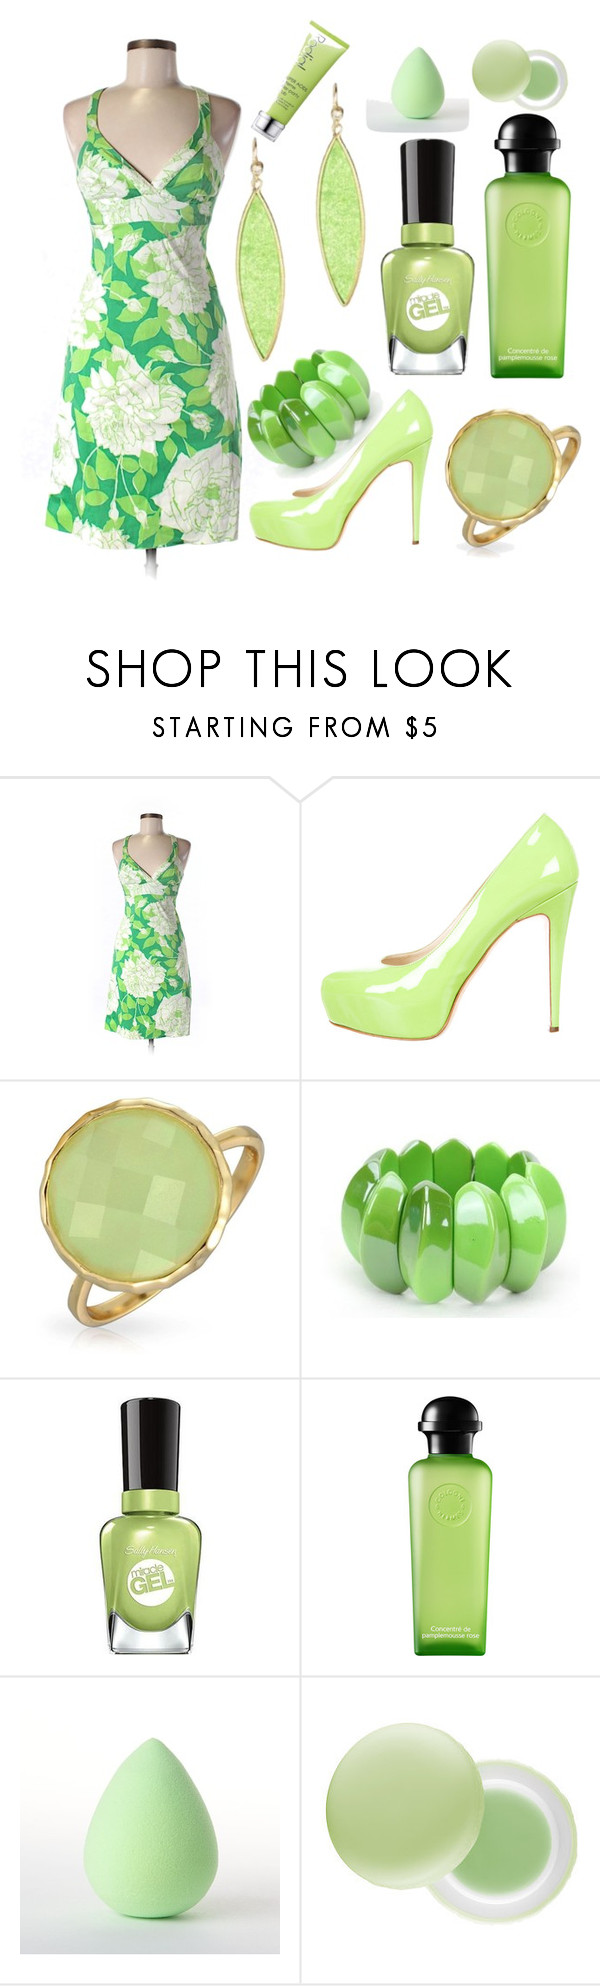 """""""Untitled #833"""" by michelle-burns-steed ❤ liked on Polyvore featuring Trina Turk LA, Brian Atwood, Bling Jewelry, Hermès, Earth Therapeutics and Rodial"""